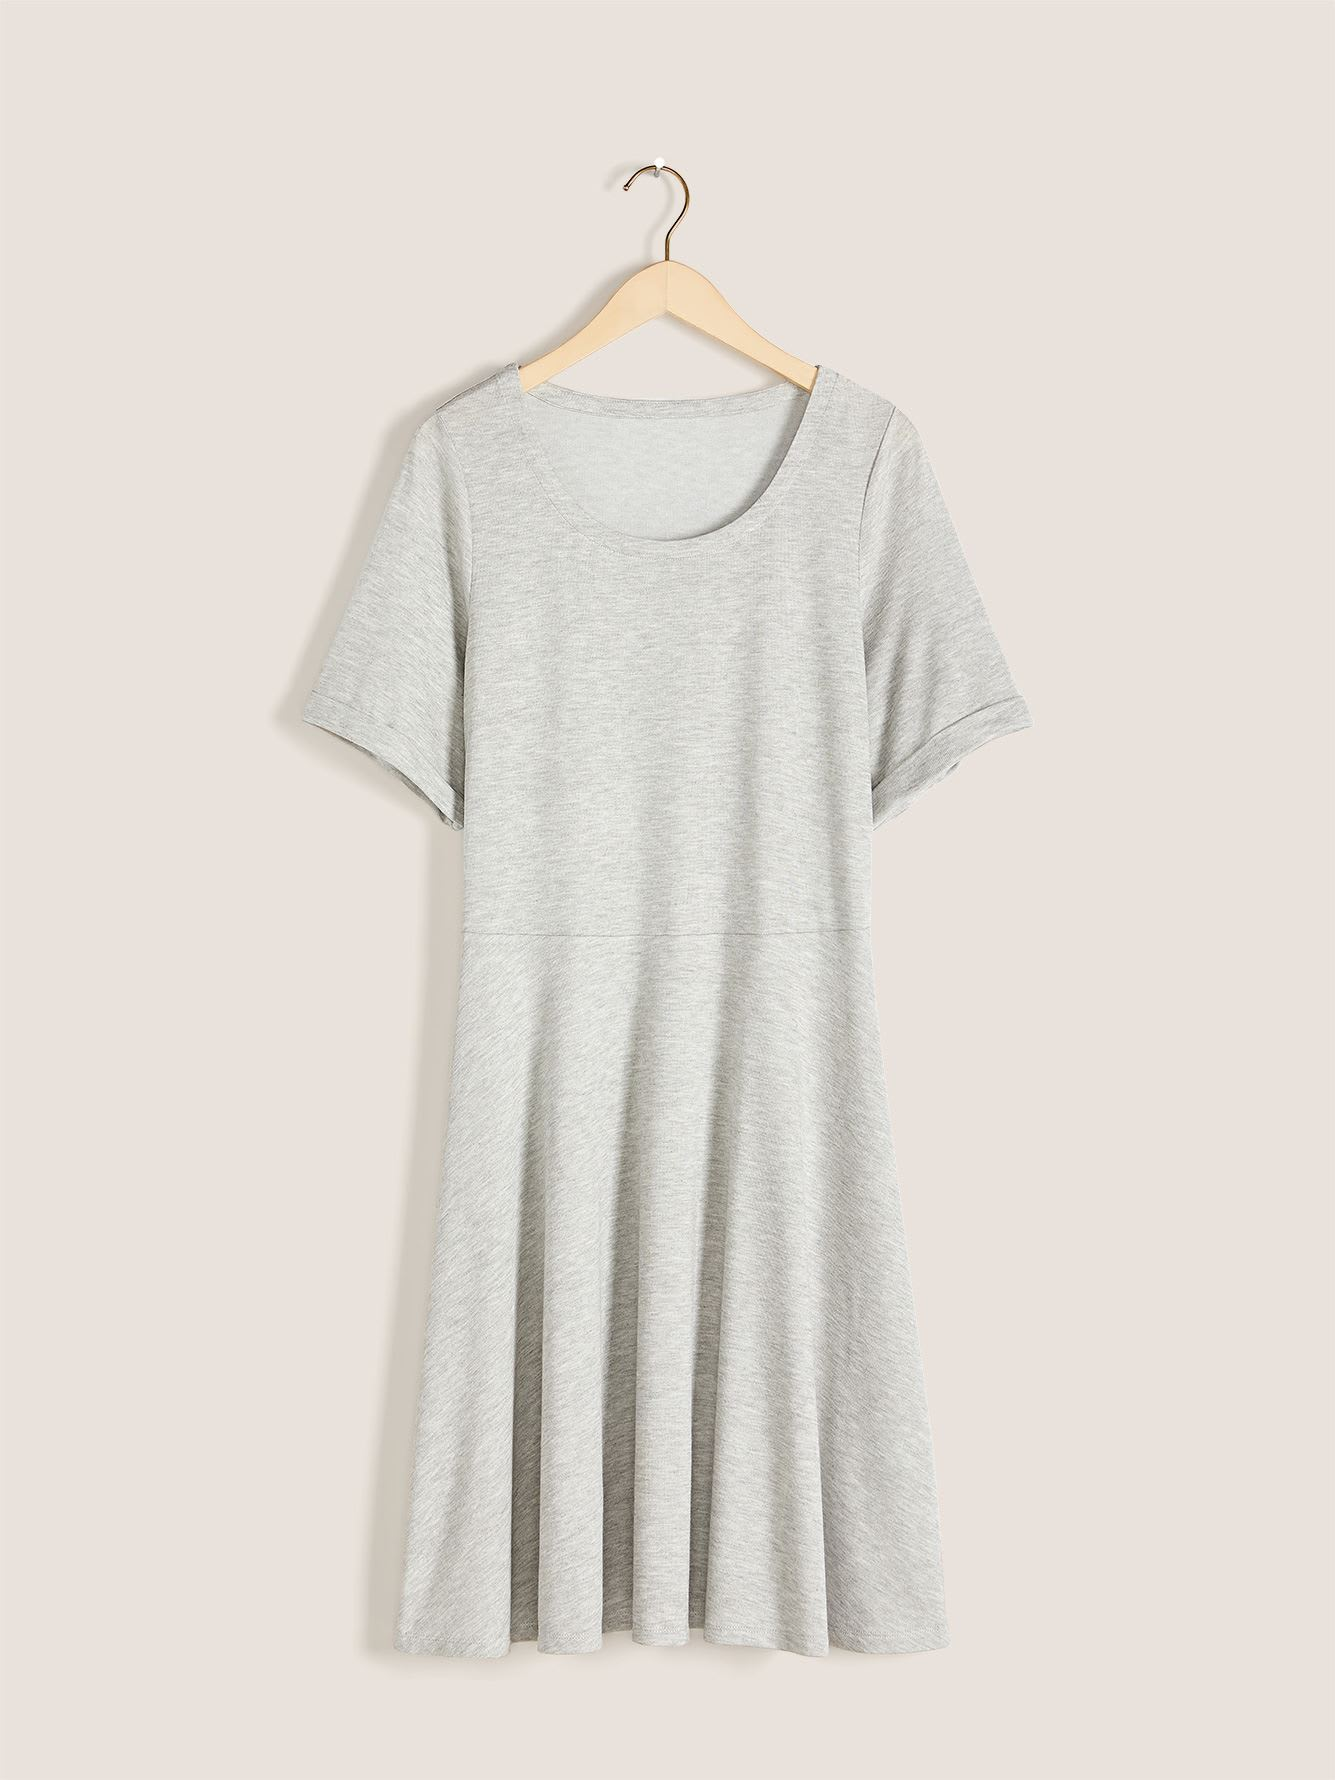 Short Sleeve Skater Dress - In Every Story